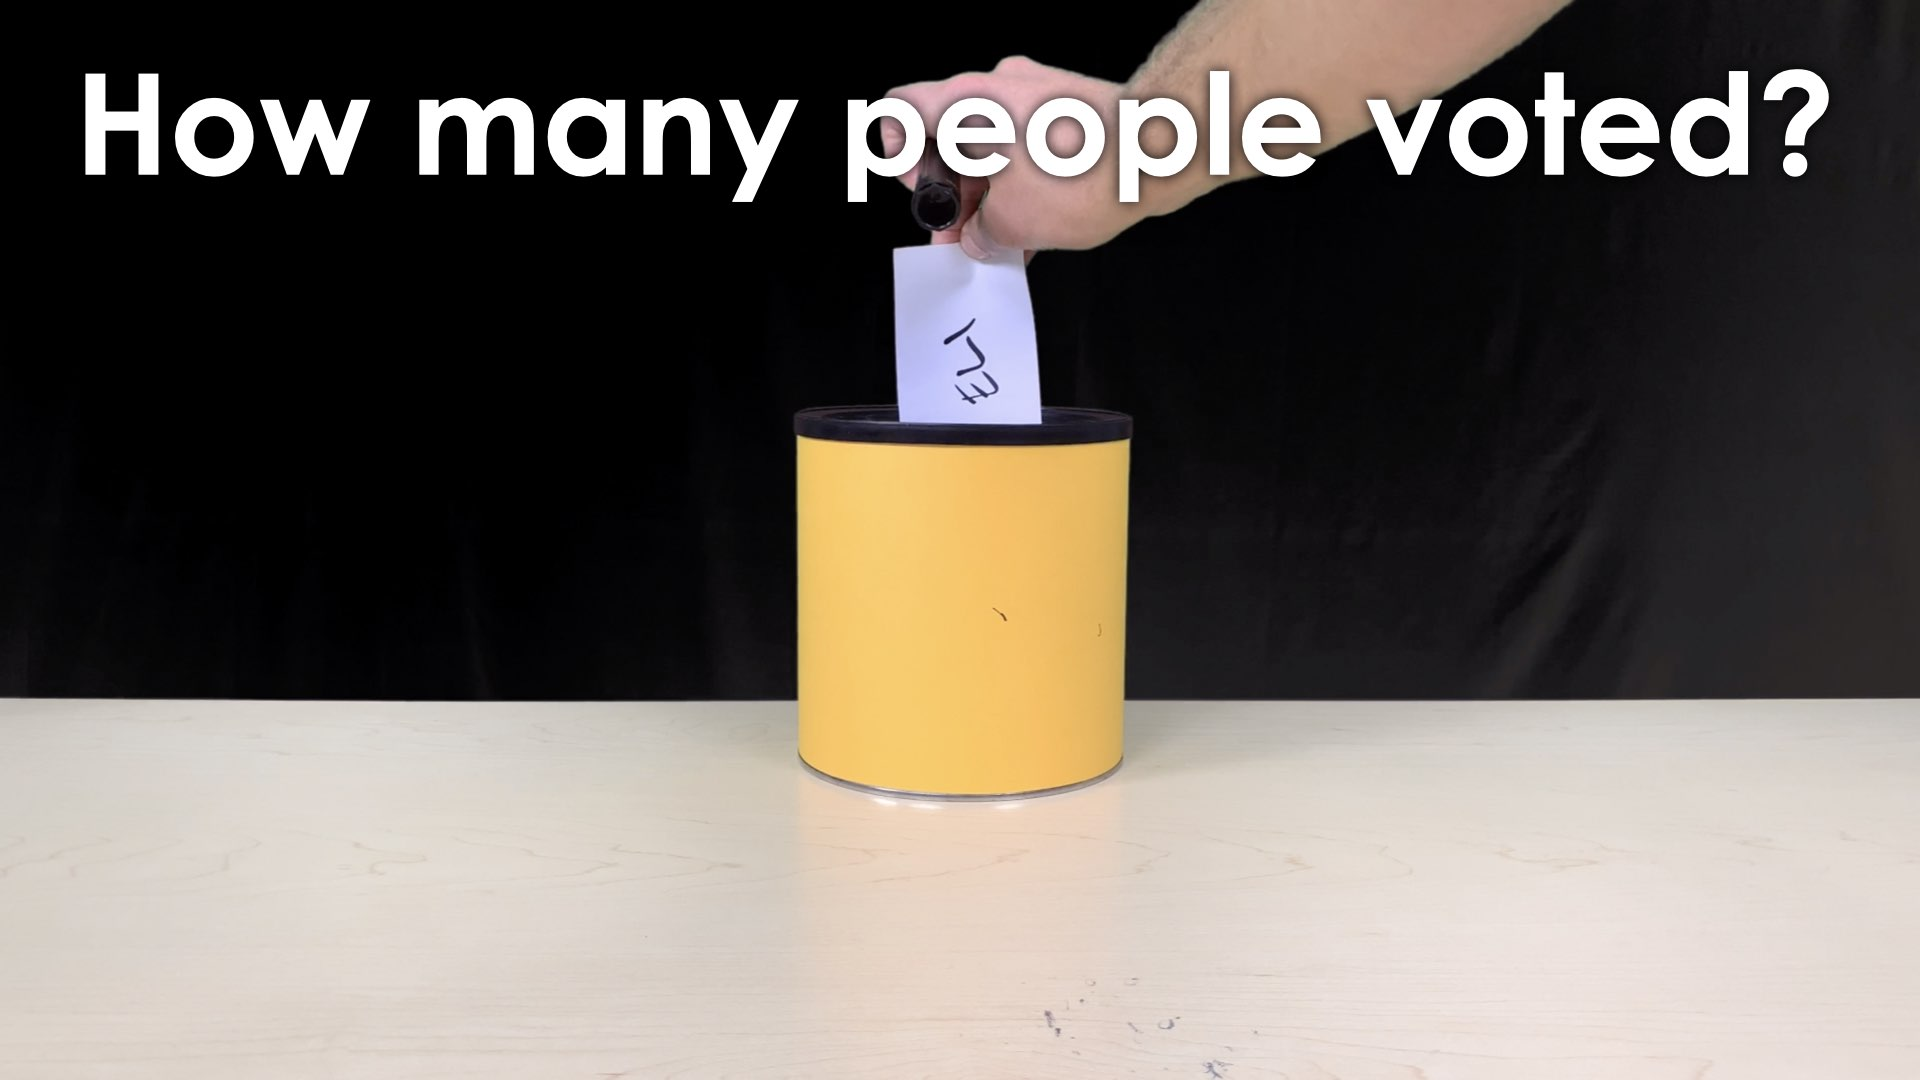 MMM Voting Booth Lesson.013 SPARK Prompt - How many people voted